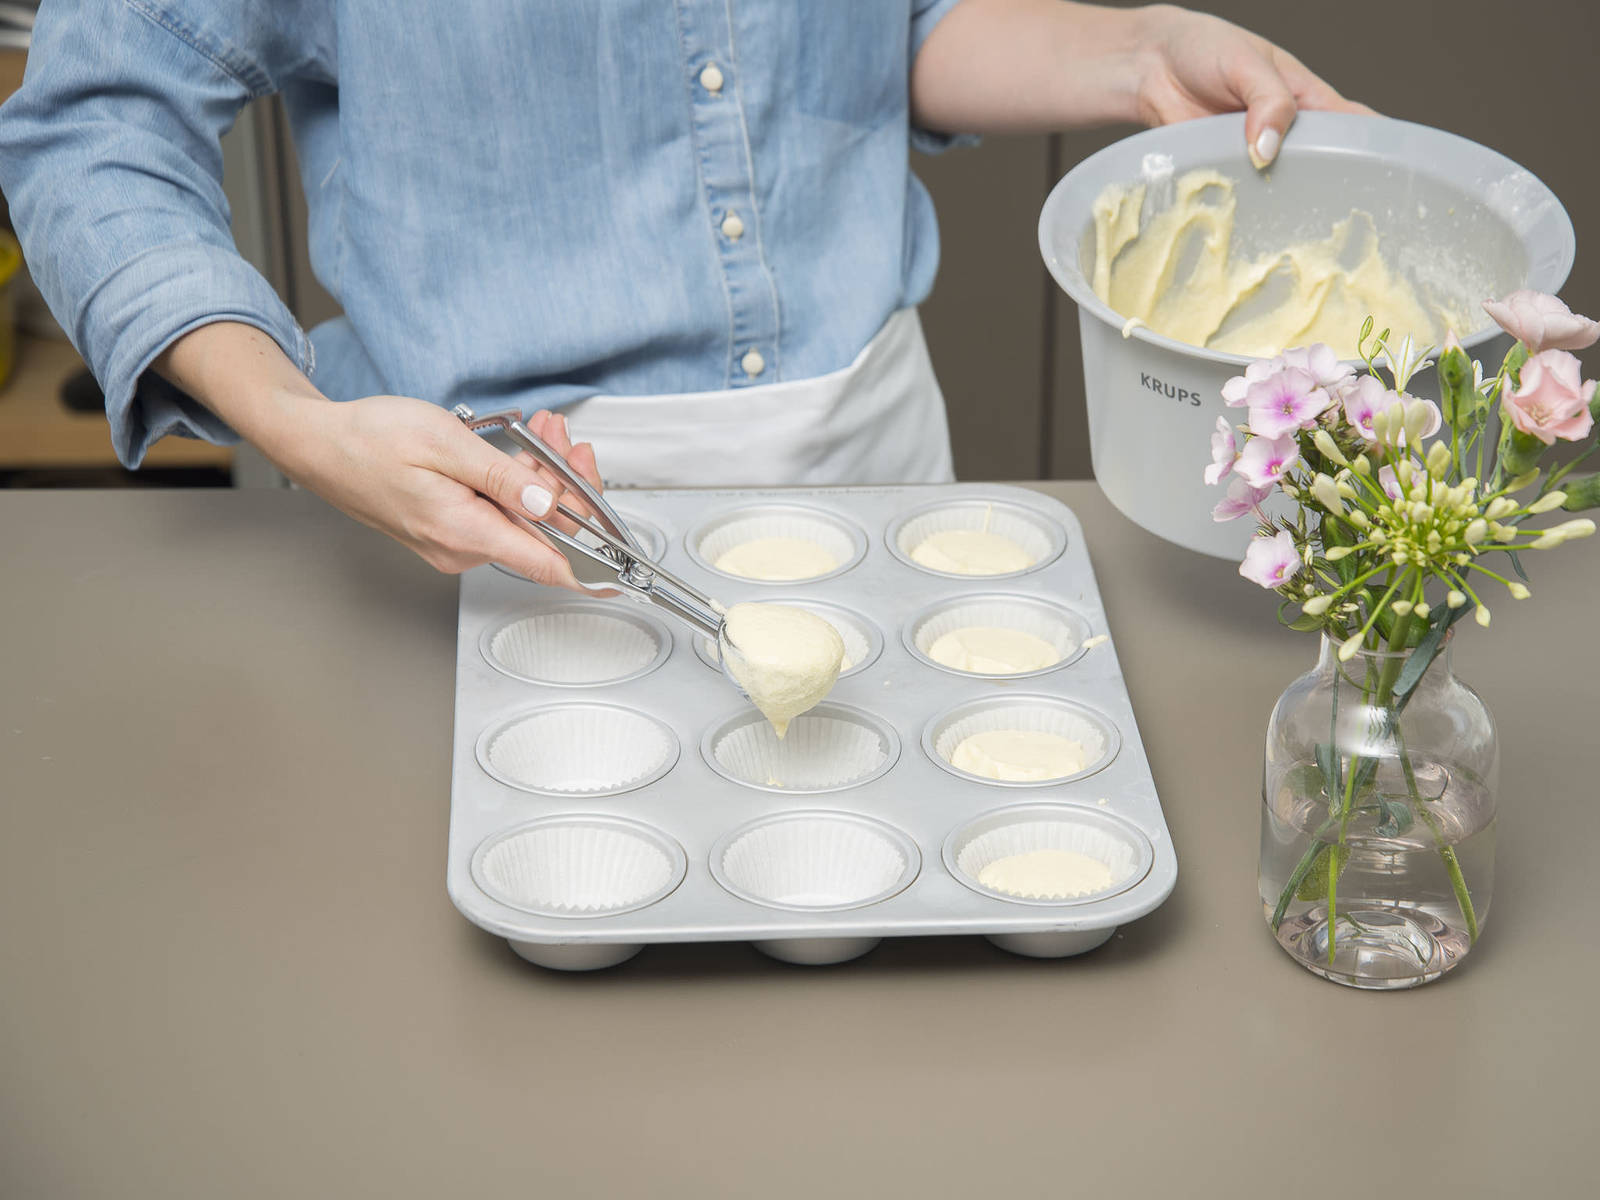 Alternate adding flour mixture and milk to batter. Mix briefly until dough just comes together. Use an ice cream scoop to add an even amount of batter to each cupcake liner. Bake at 175°C/350°F for approx. 18 – 20 min., or until a toothpick inserted into the center of each cupcake comes out clean. Let cool completely.